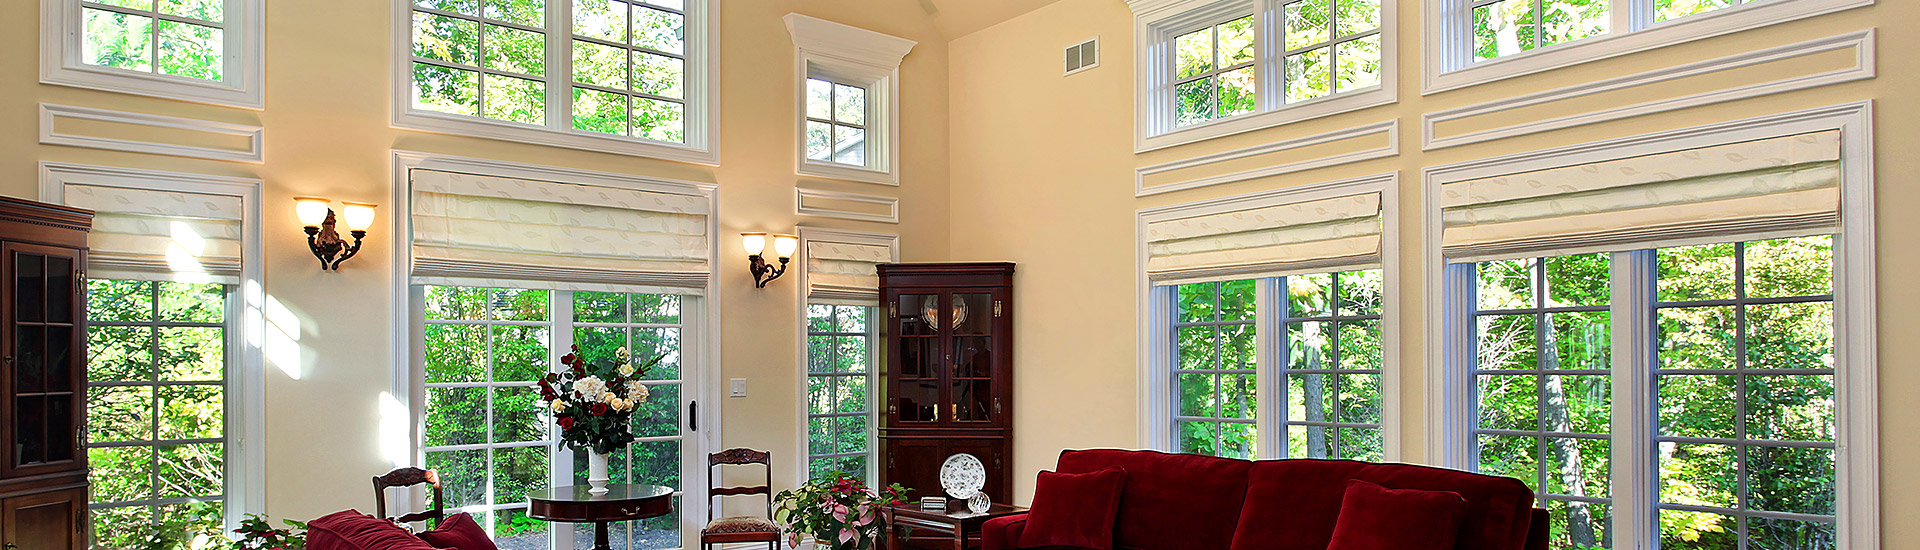 Windows Company offers Installation & Repair Services in MD, VA & Washington, DC